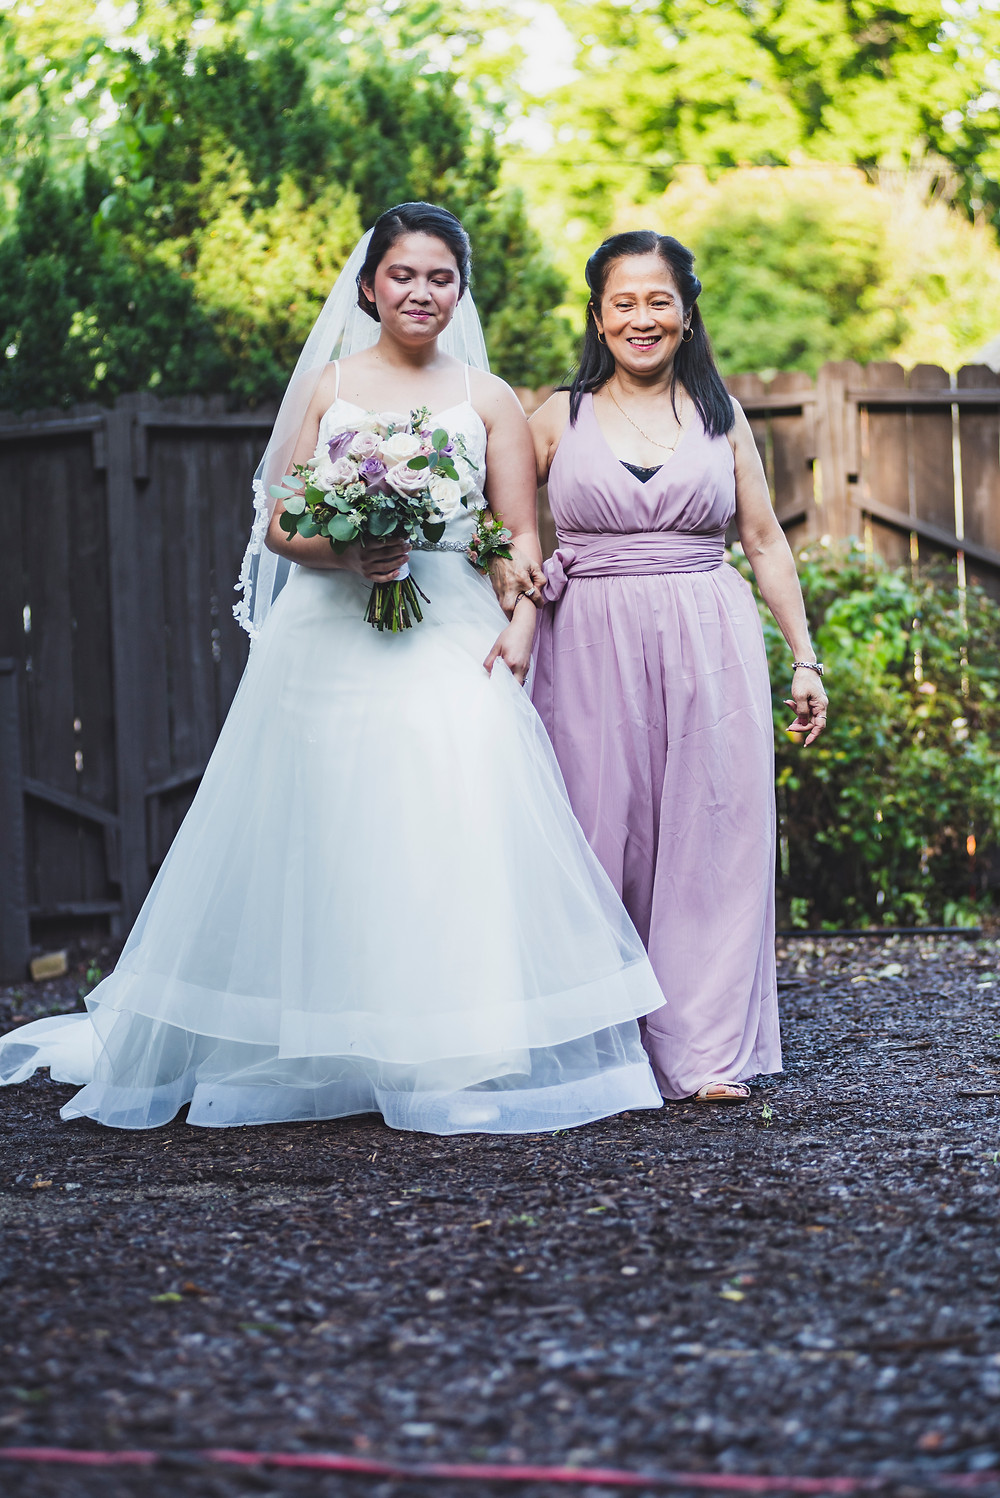 East Nashville Wedding - Edesia